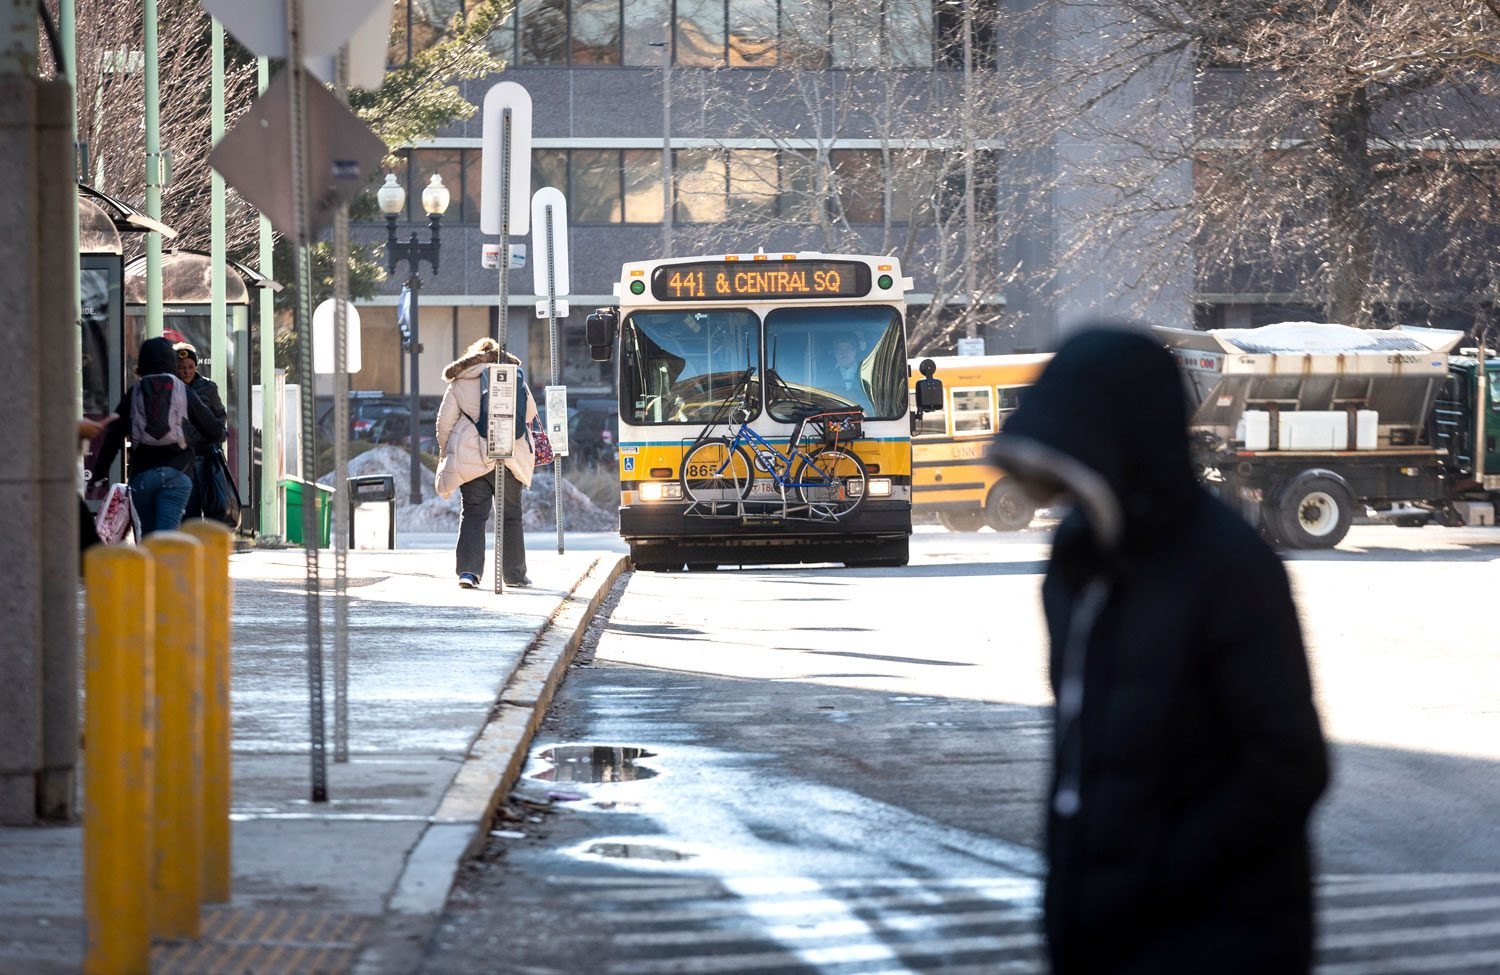 Mbta Proposes Changes To Bus Routes That Service North